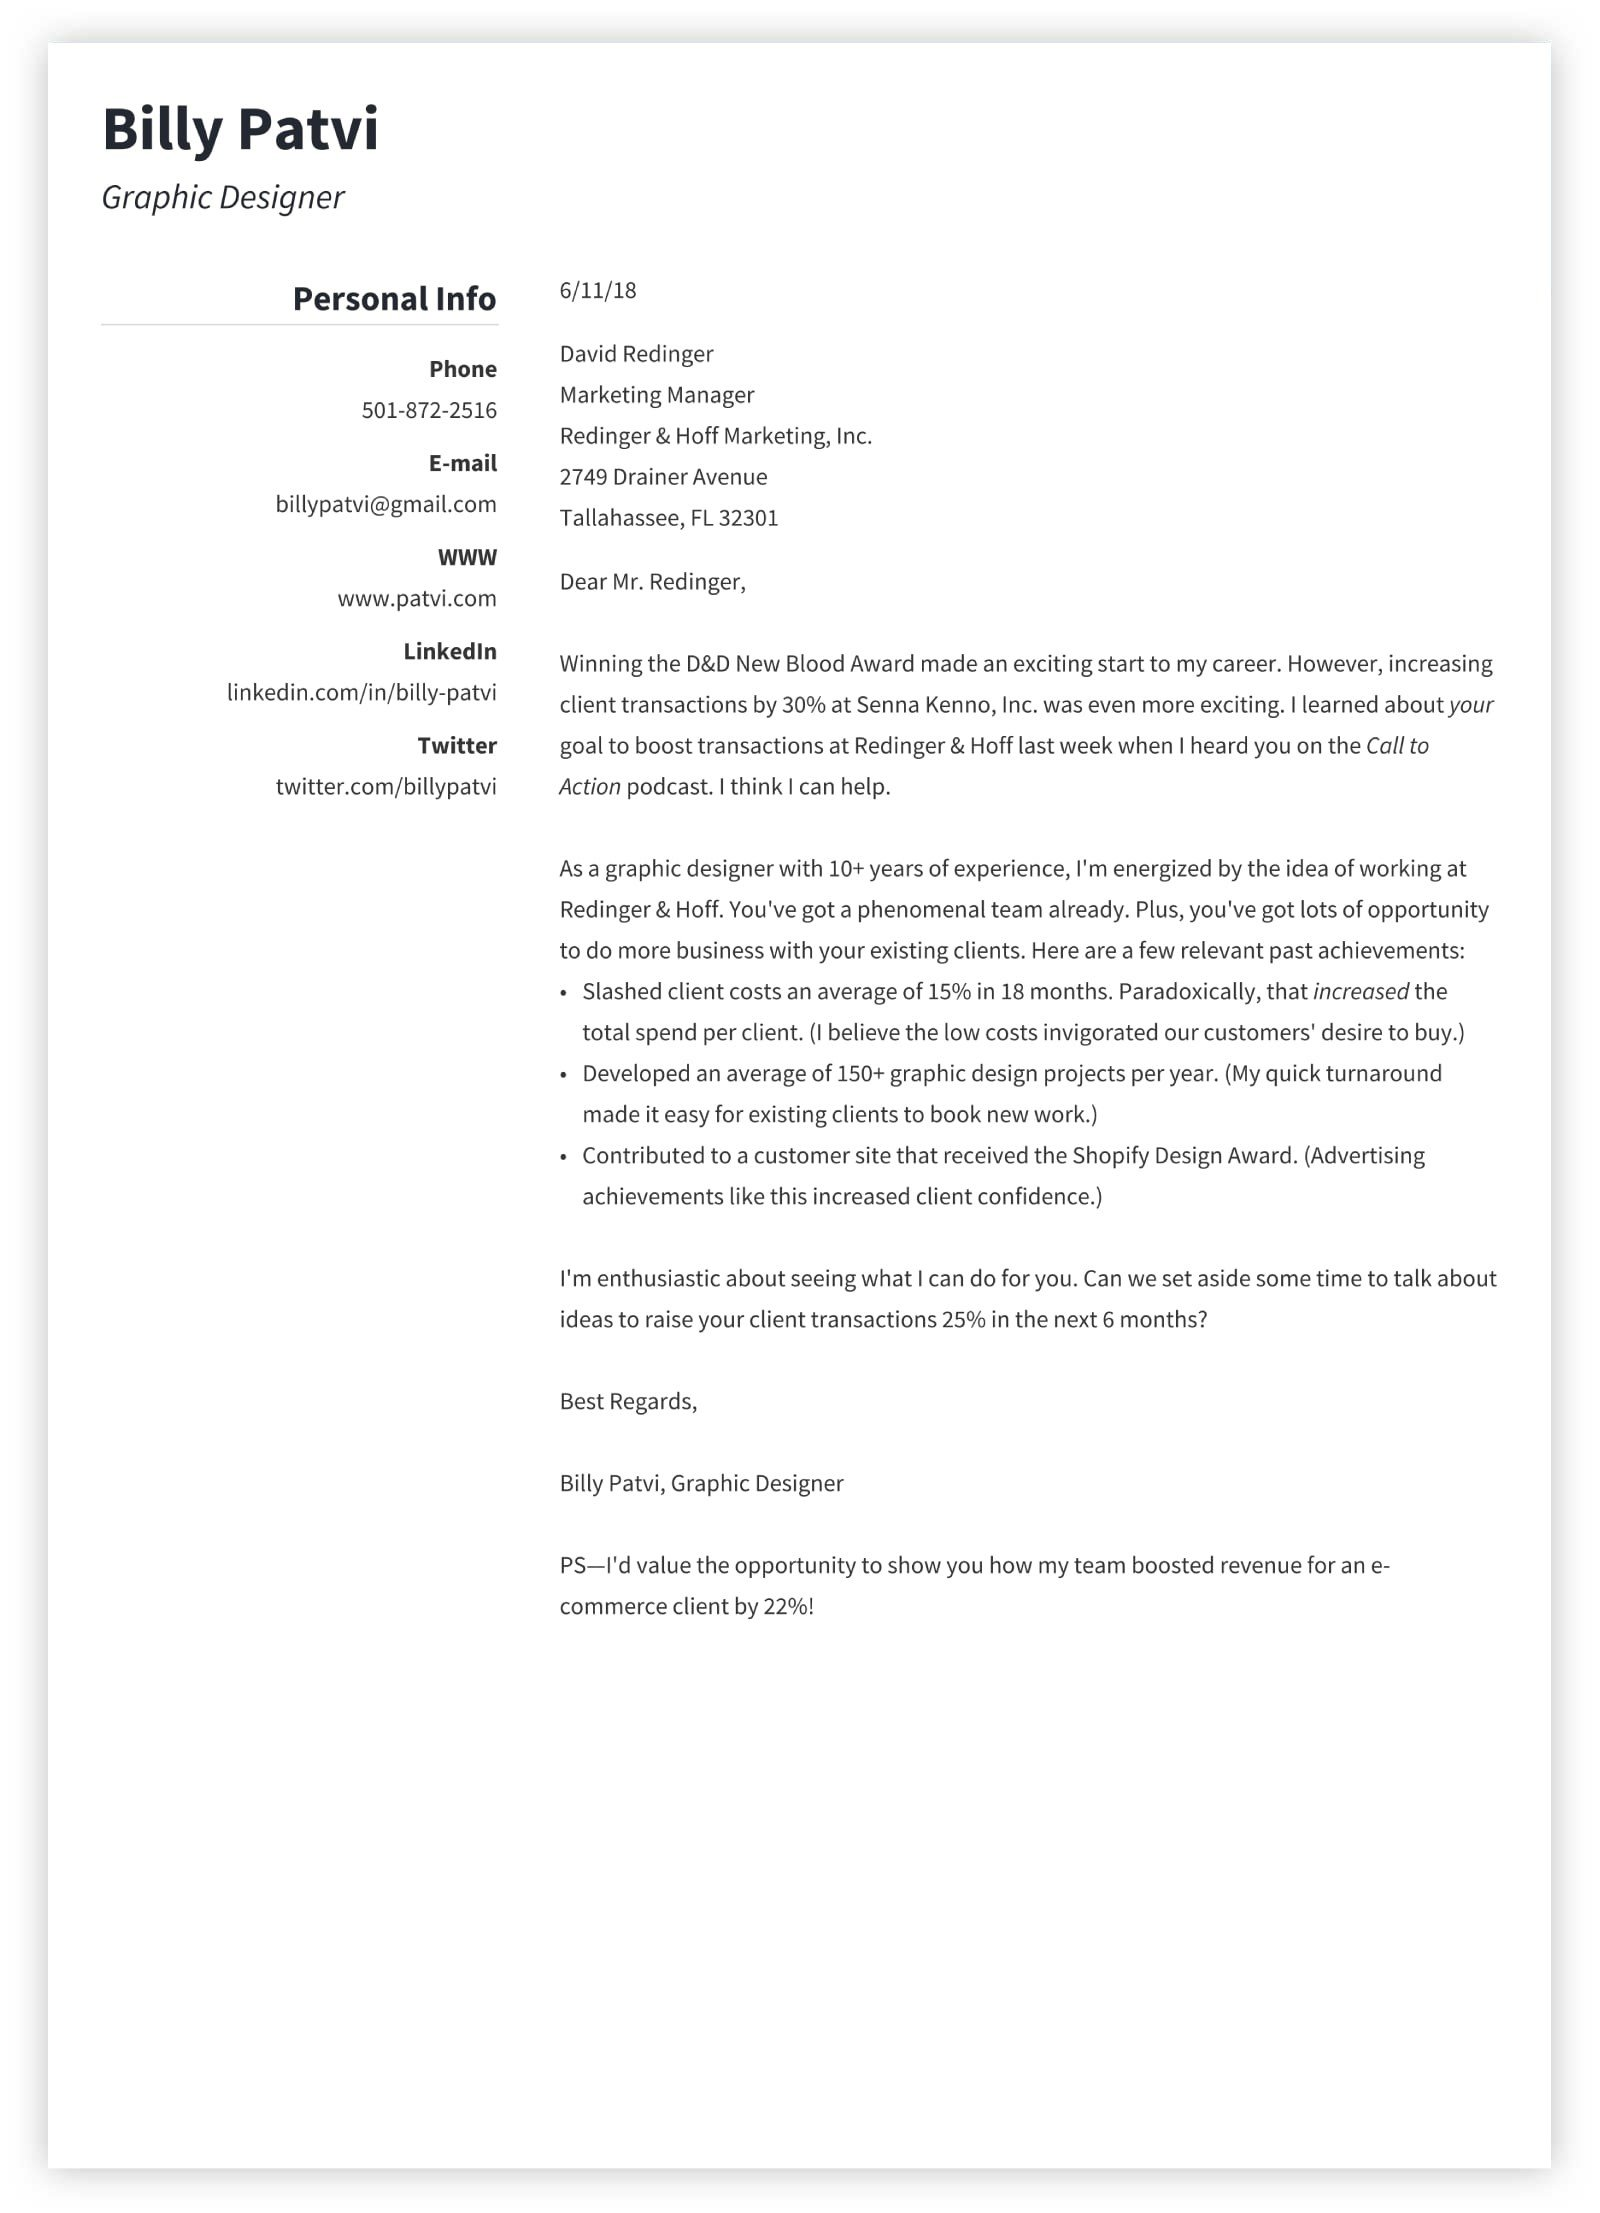 How to Write a Cover Letter/Application Letter: 12 Examples for